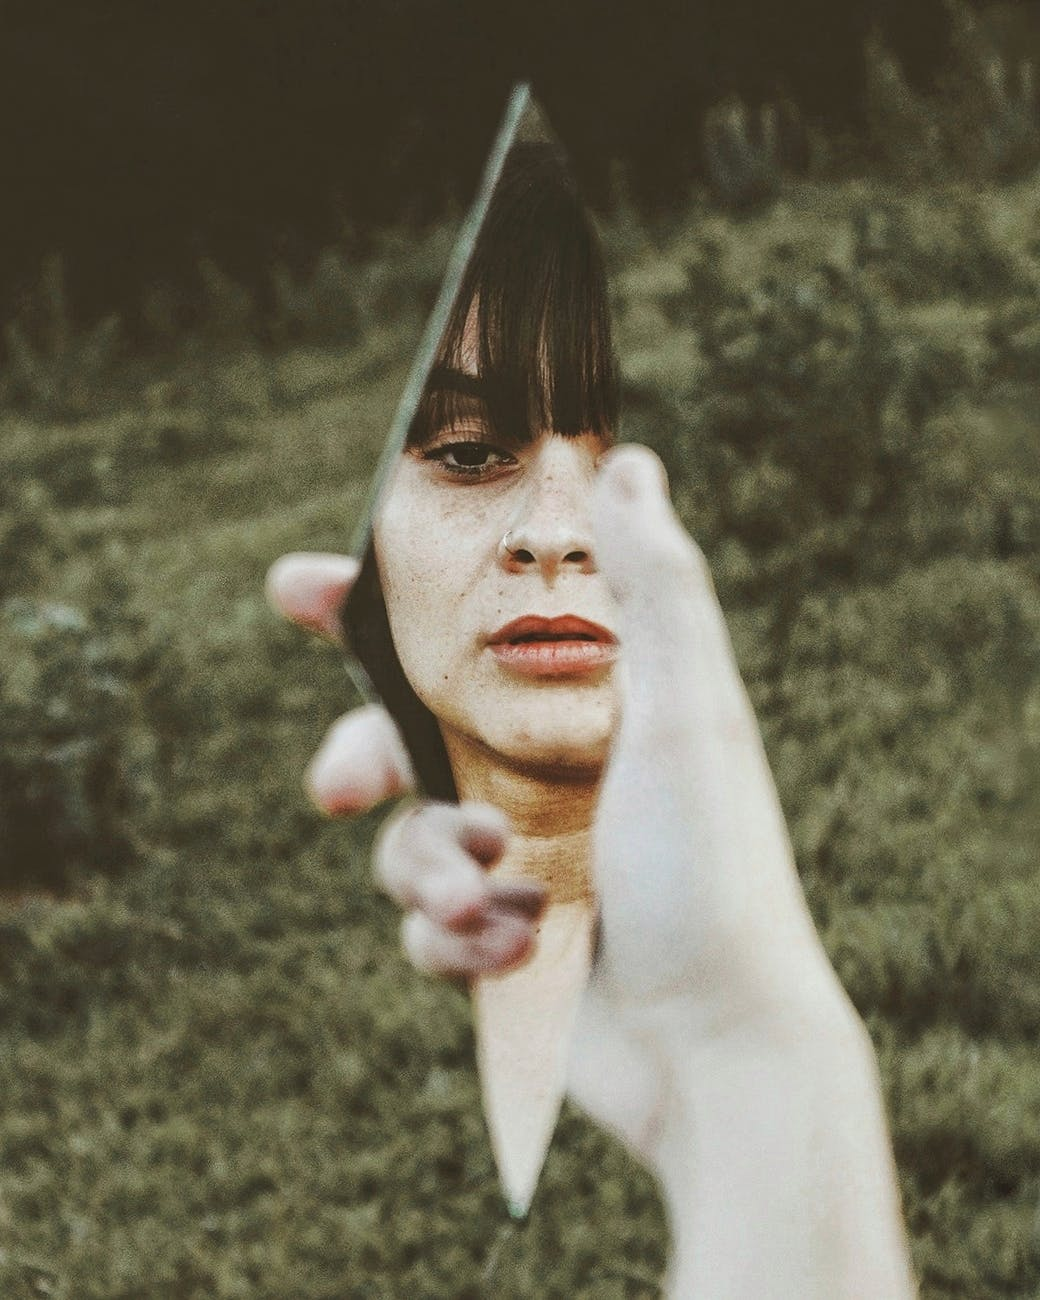 Image Description: A woman with brown bangs, a nose ring, and freckles looks at herself in the reflection of a piece of broken mirror.